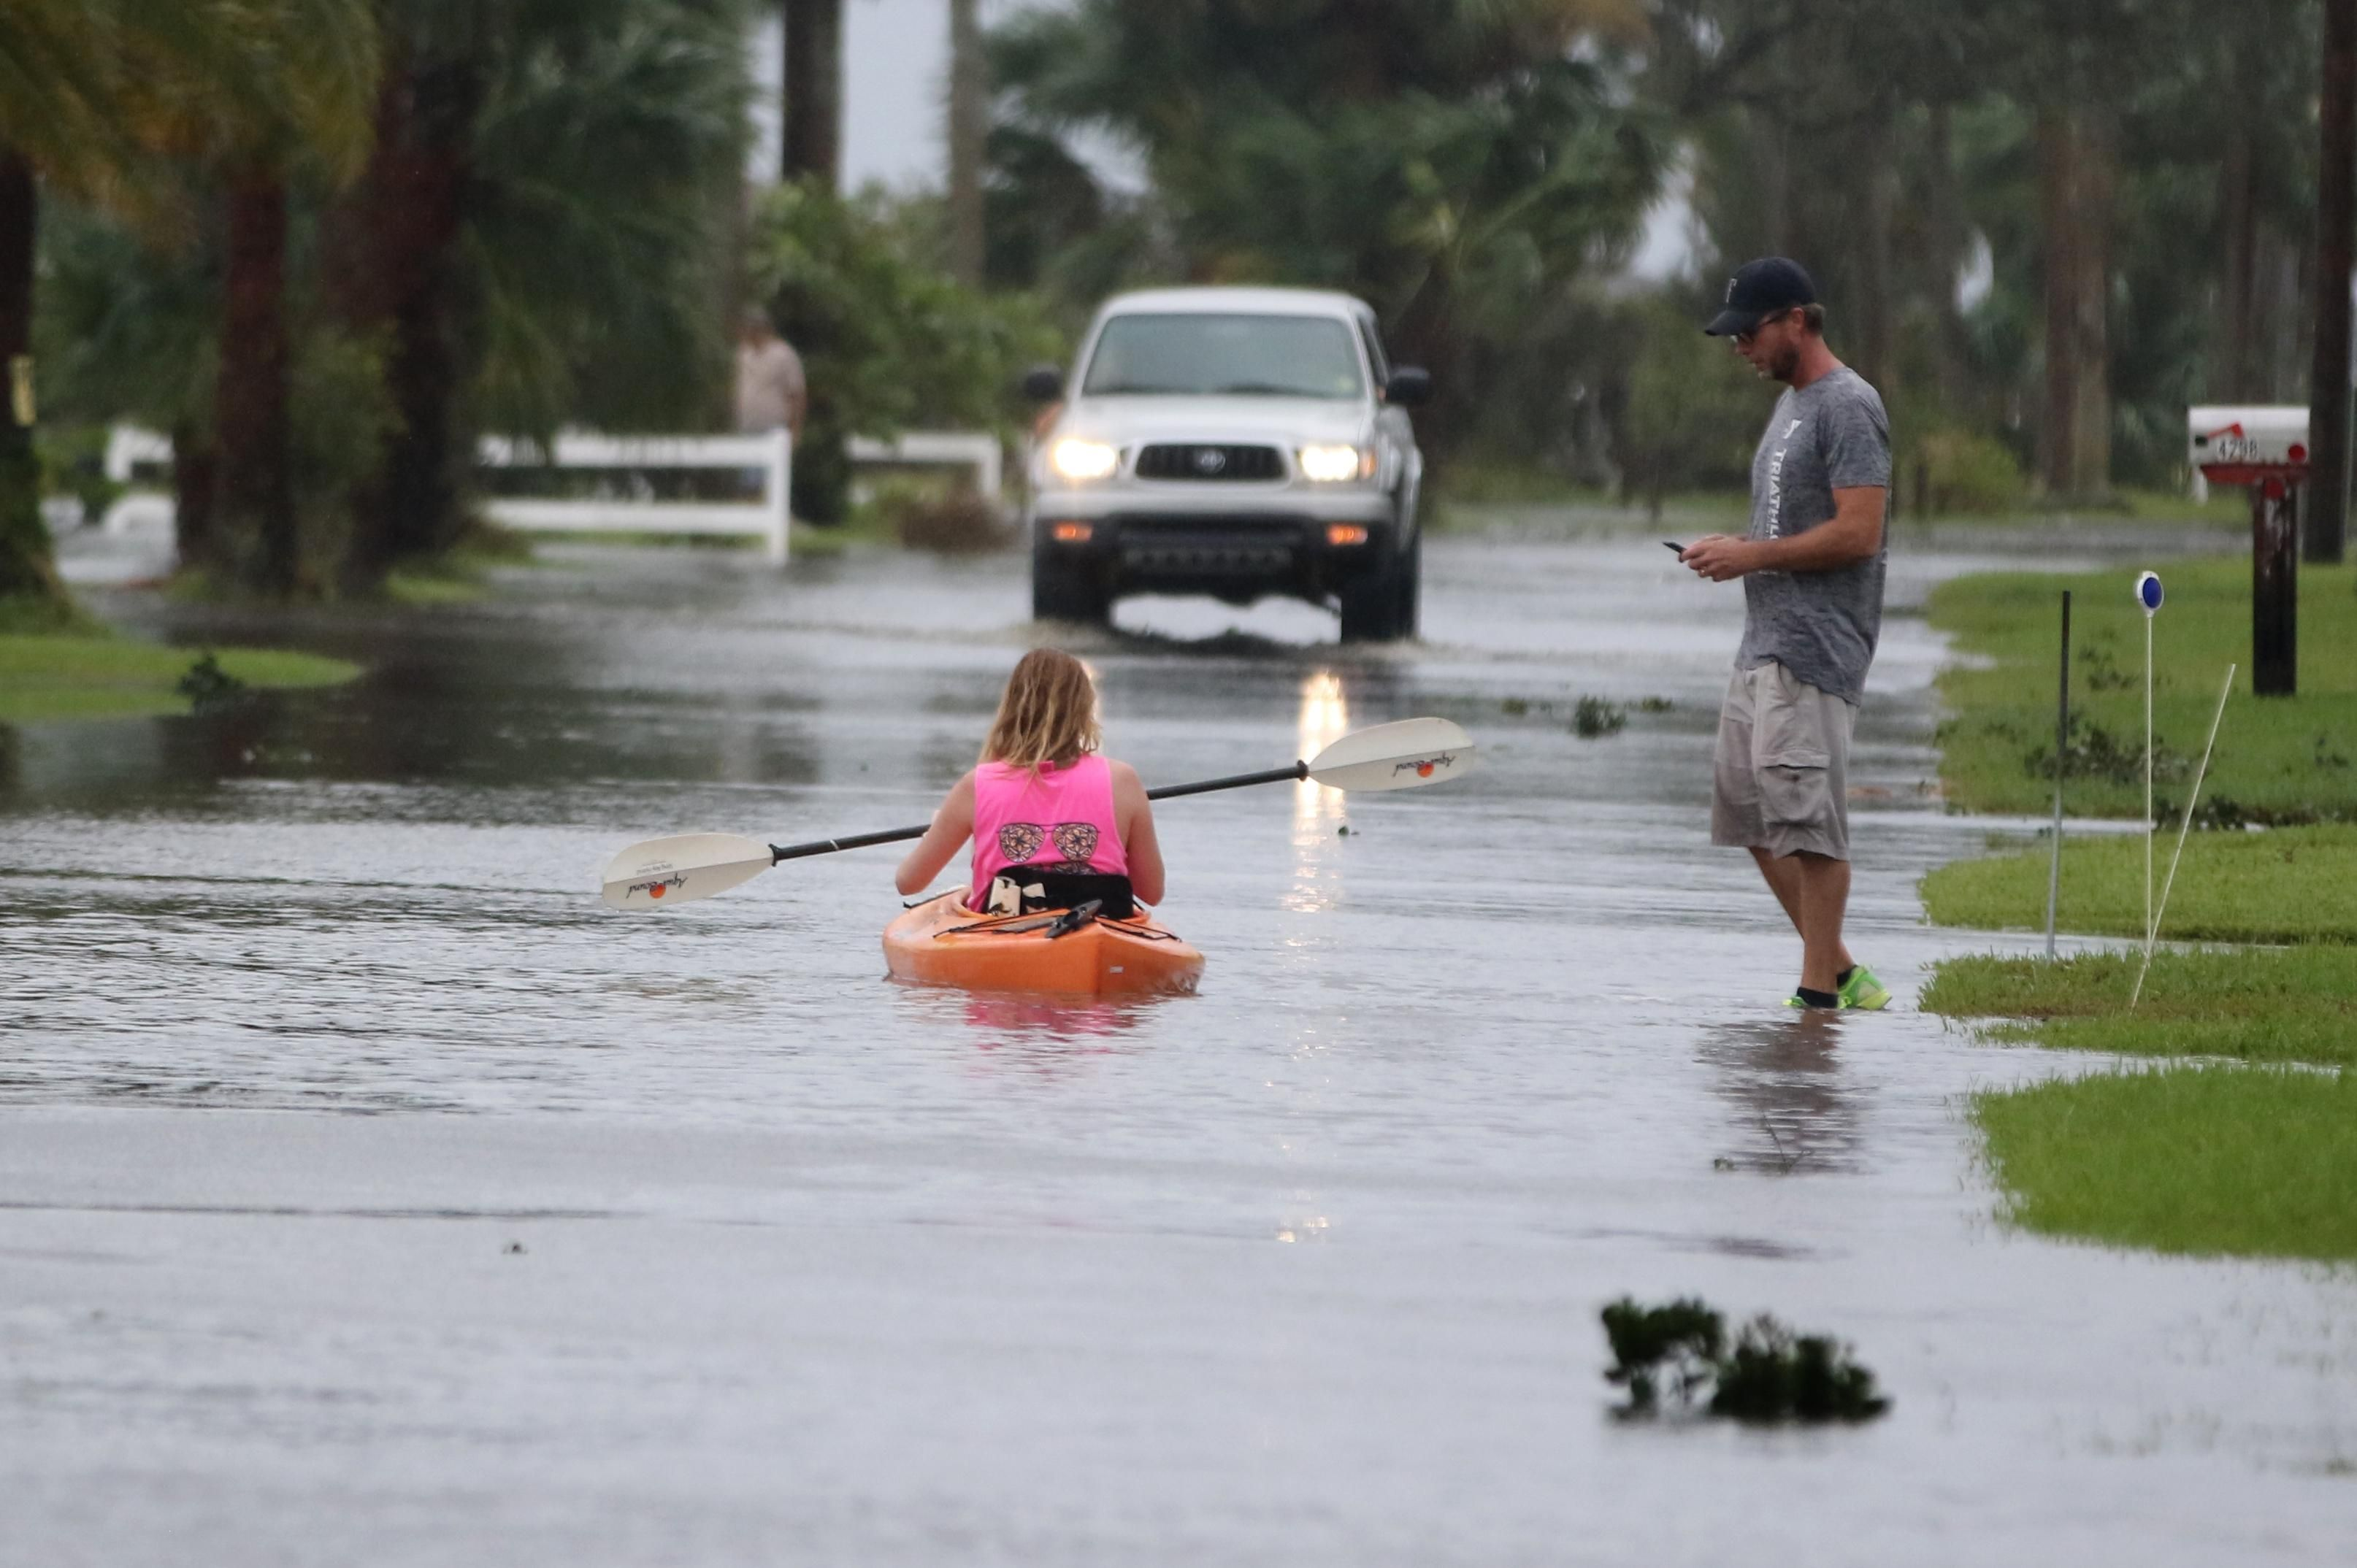 Port Orange Hurricane Matthew Brought Water Over The Banks Of The Halifax River On Friday Flooding Parts Of Riverside Hurricane Matthew Flooded Roads Flood